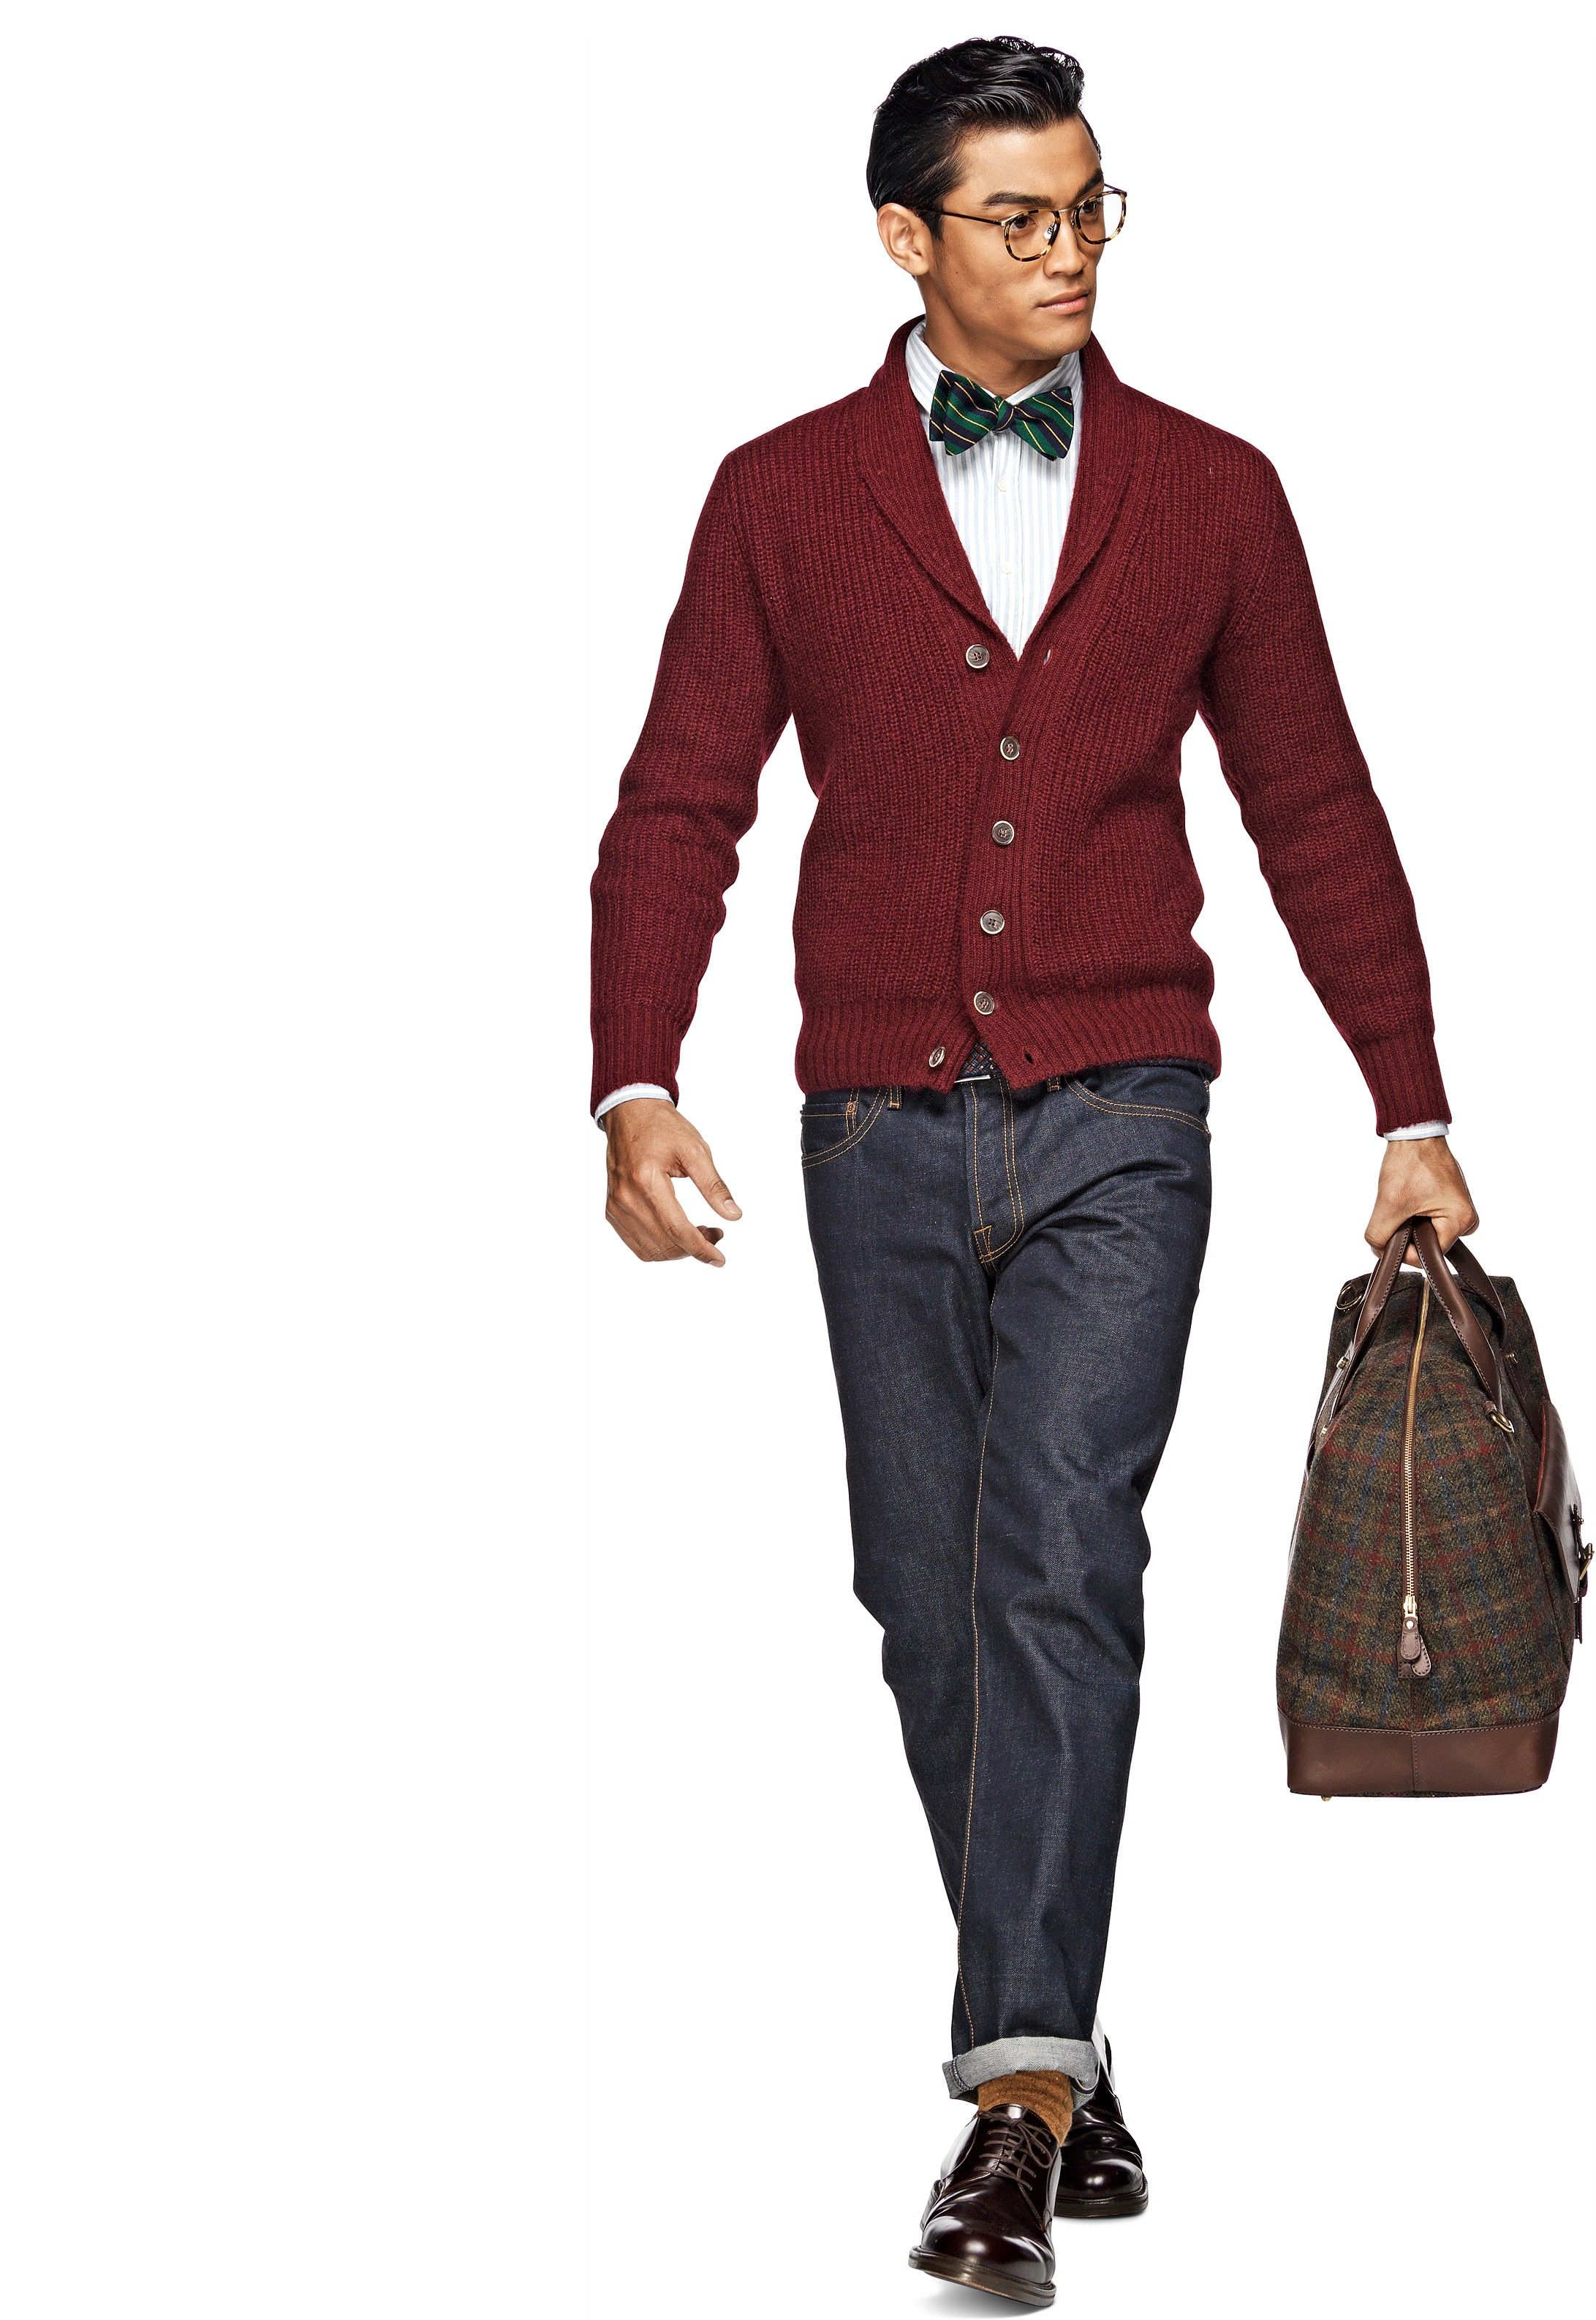 Cardigan Burgundy Sw362 | Suitsupply Online Store | suits & things ...